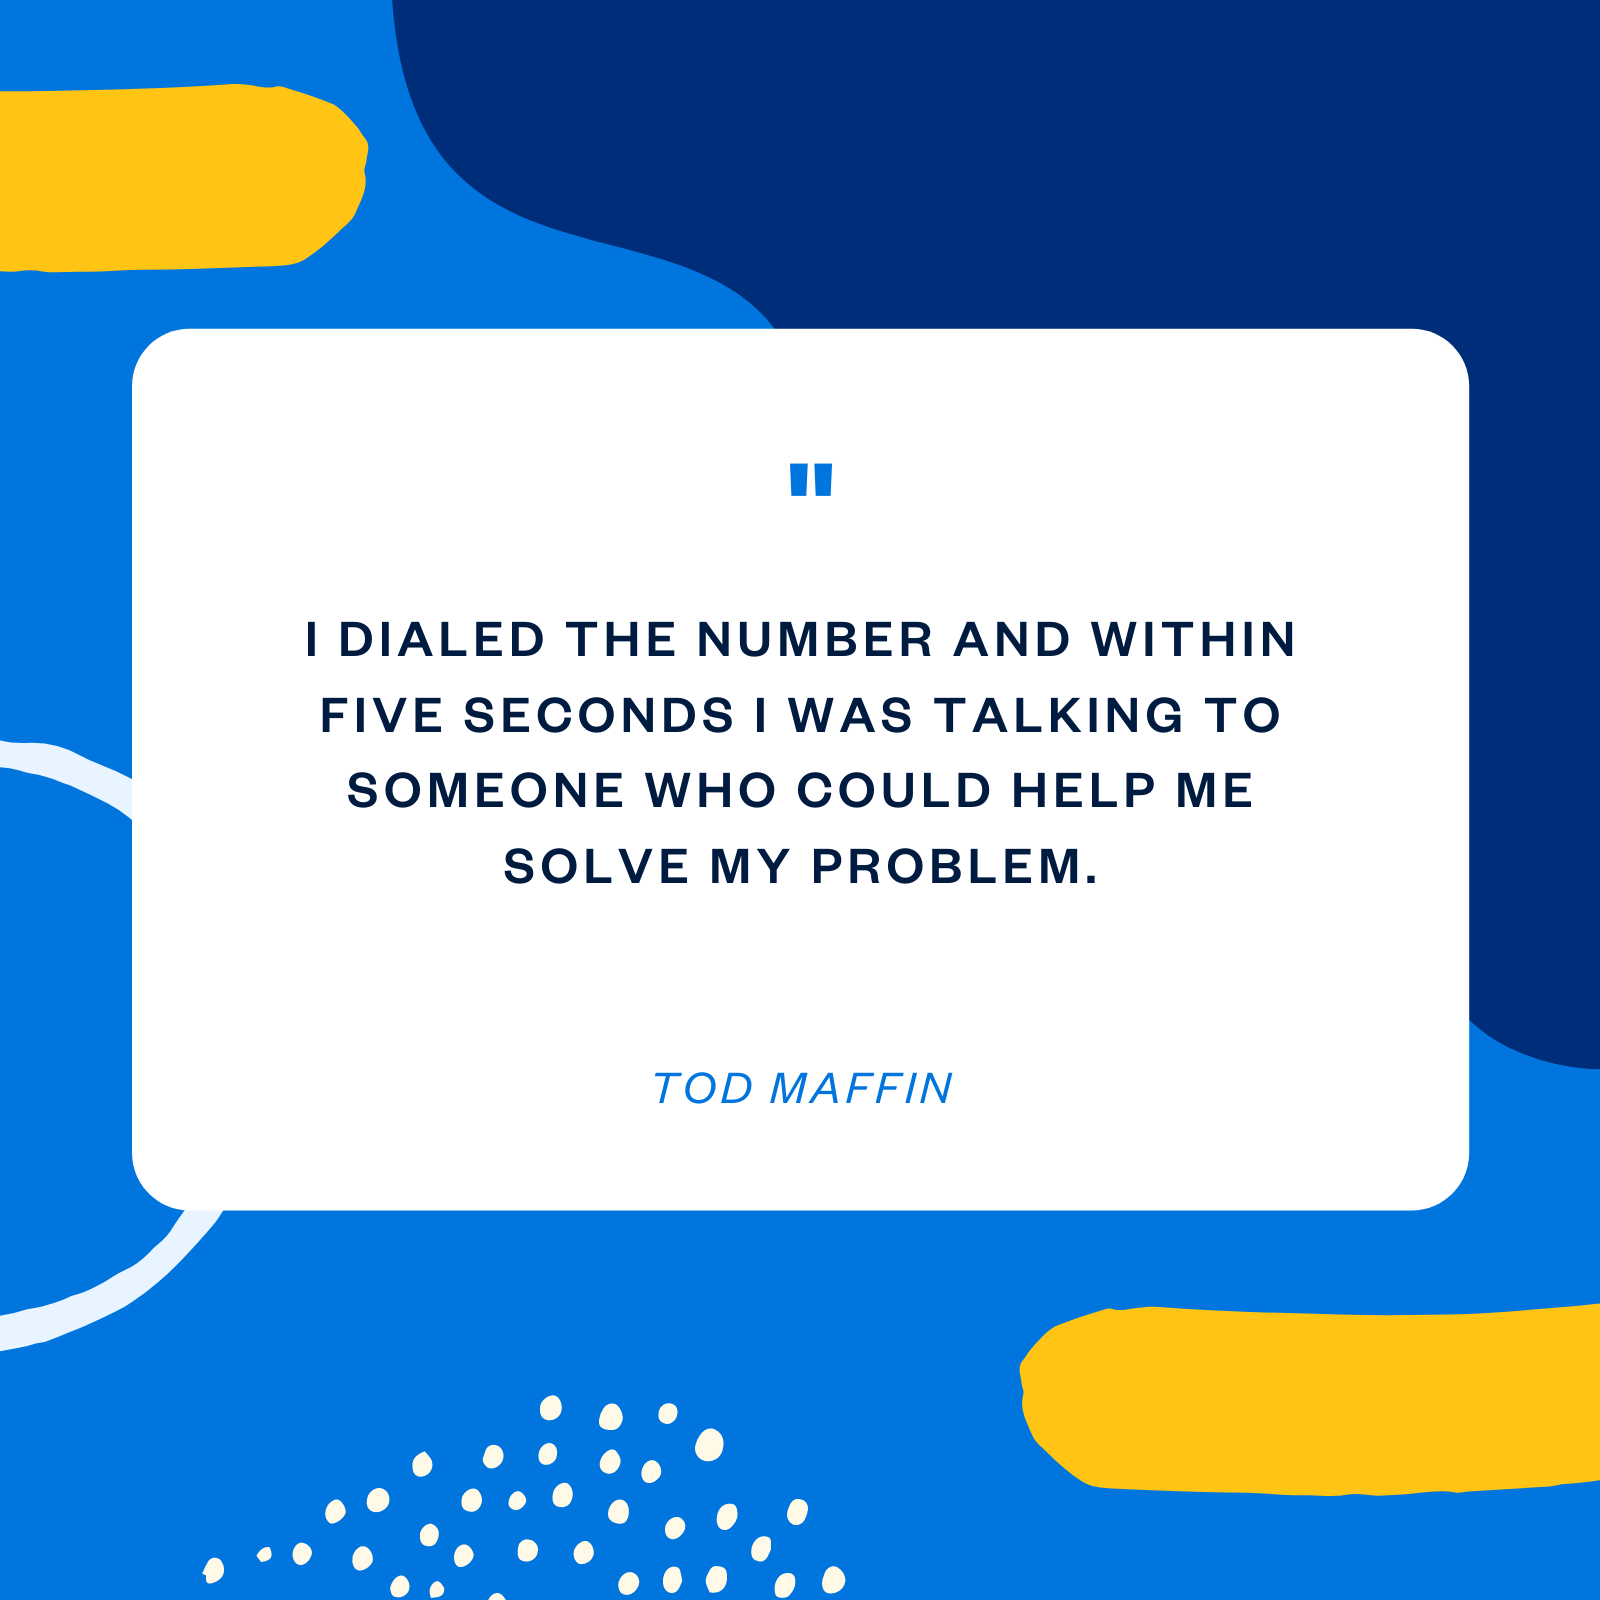 Tod Maffin customer support quote